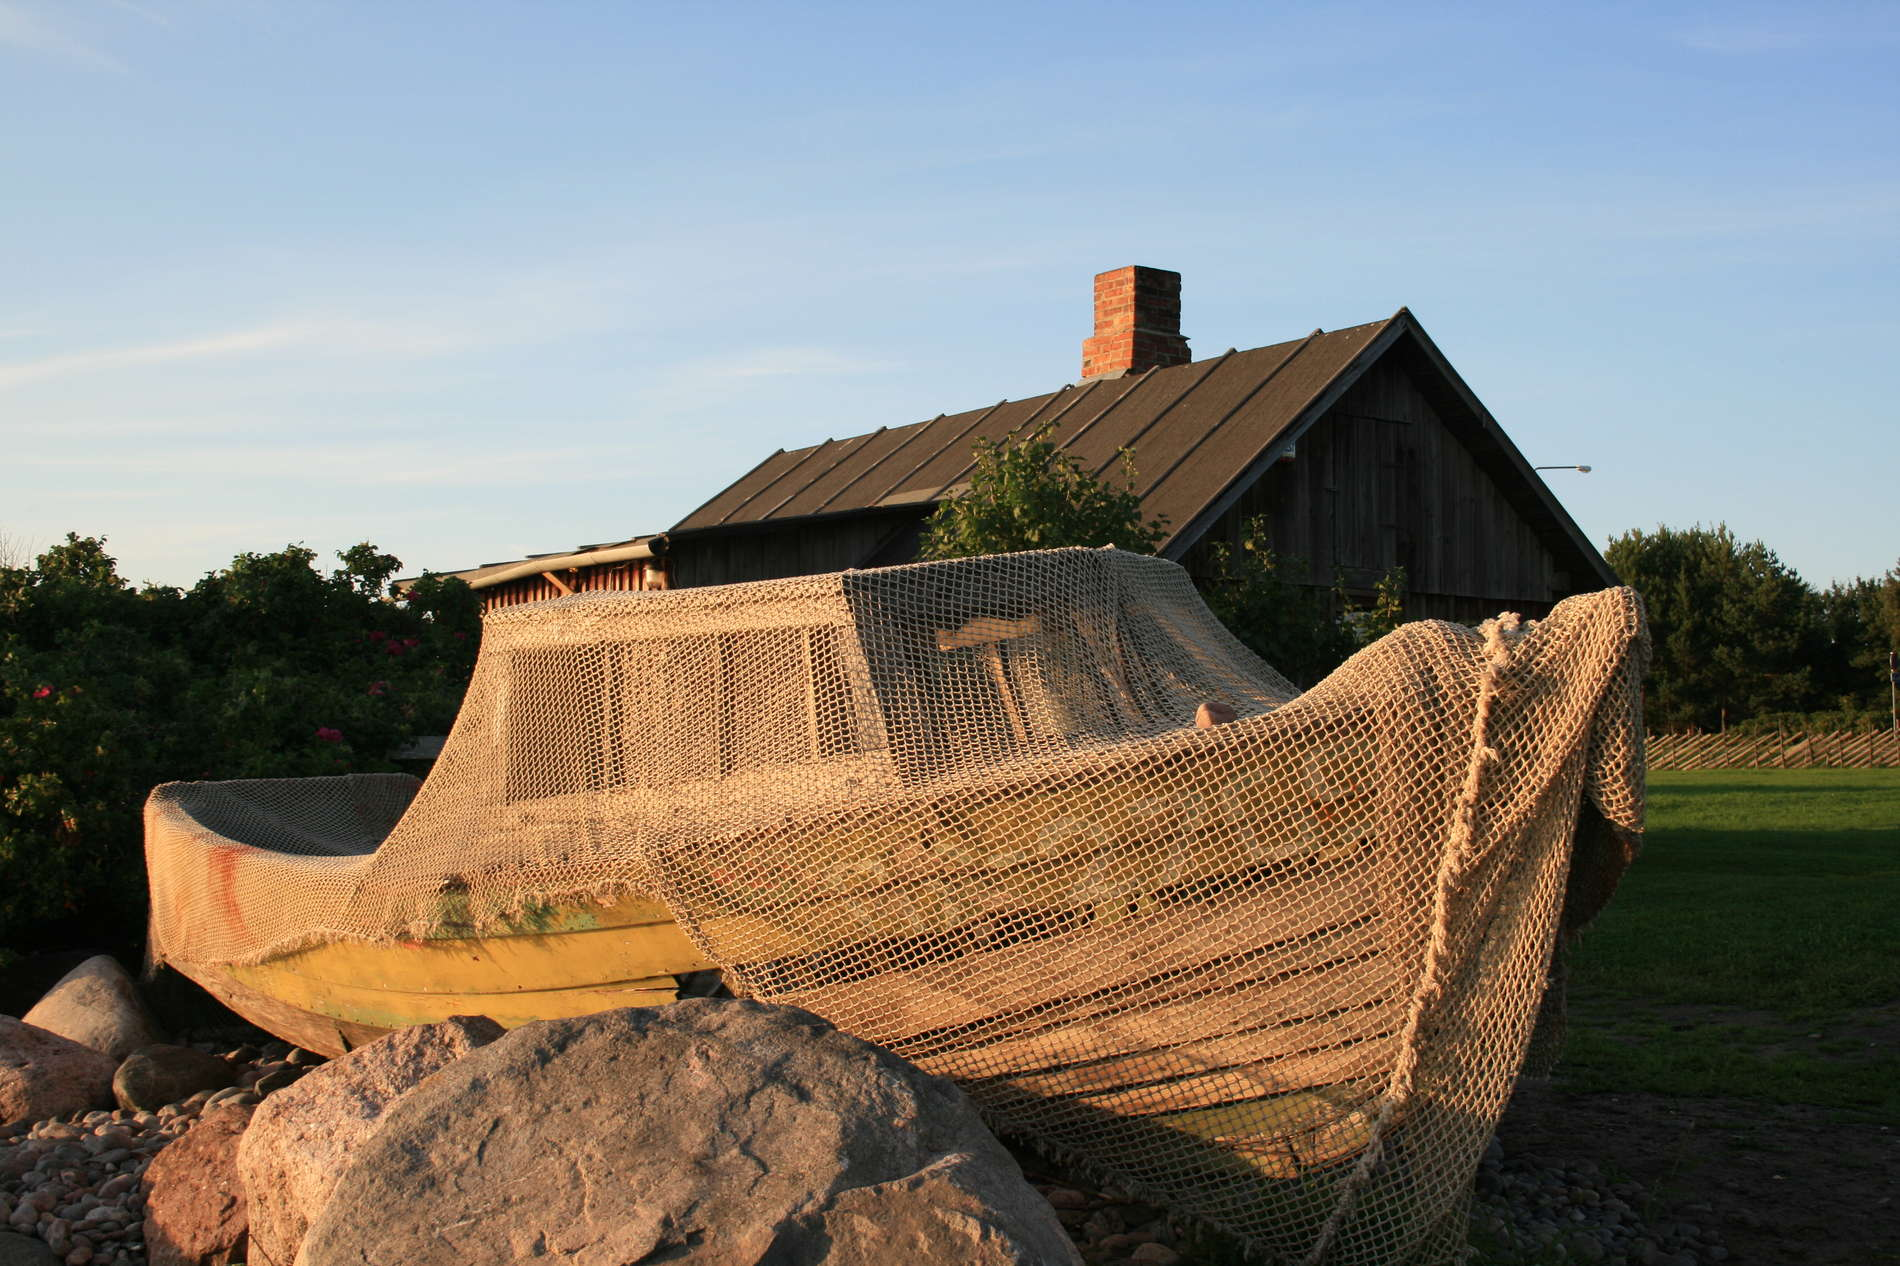 Old fishing boat at the Viimsi Open Air Museum in Estonia.